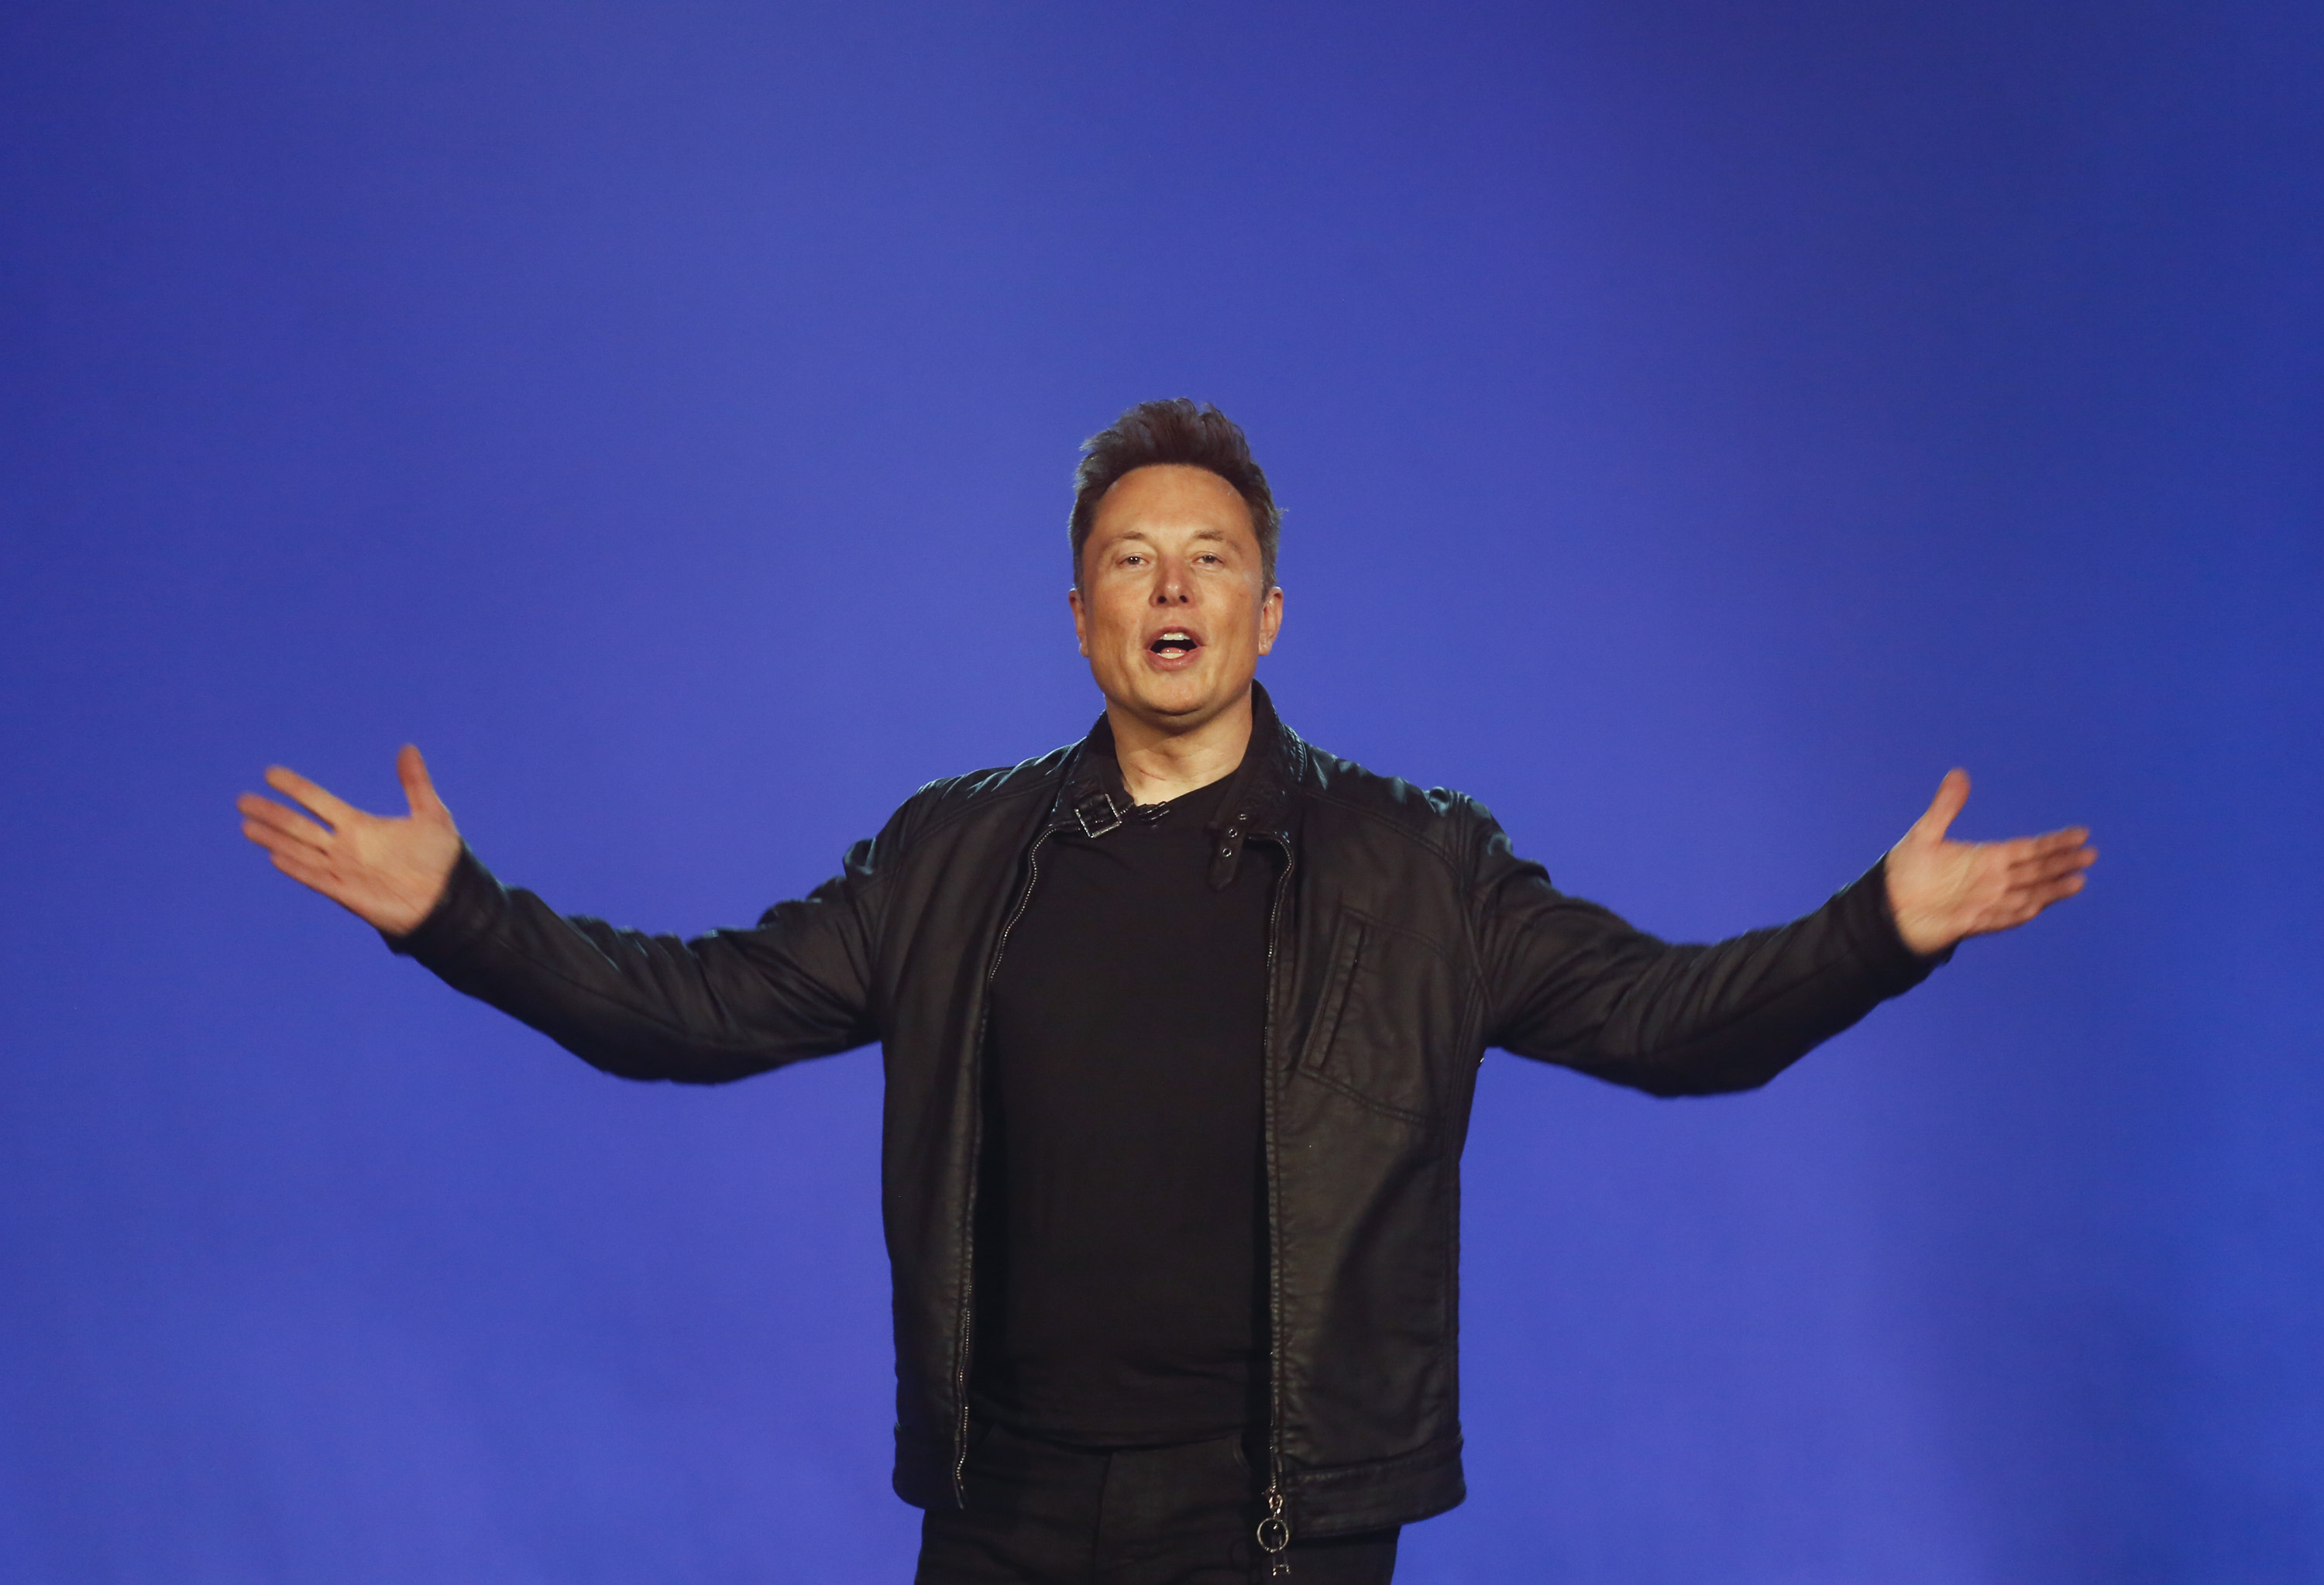 Elon Musk standing on a stage with his arms out.